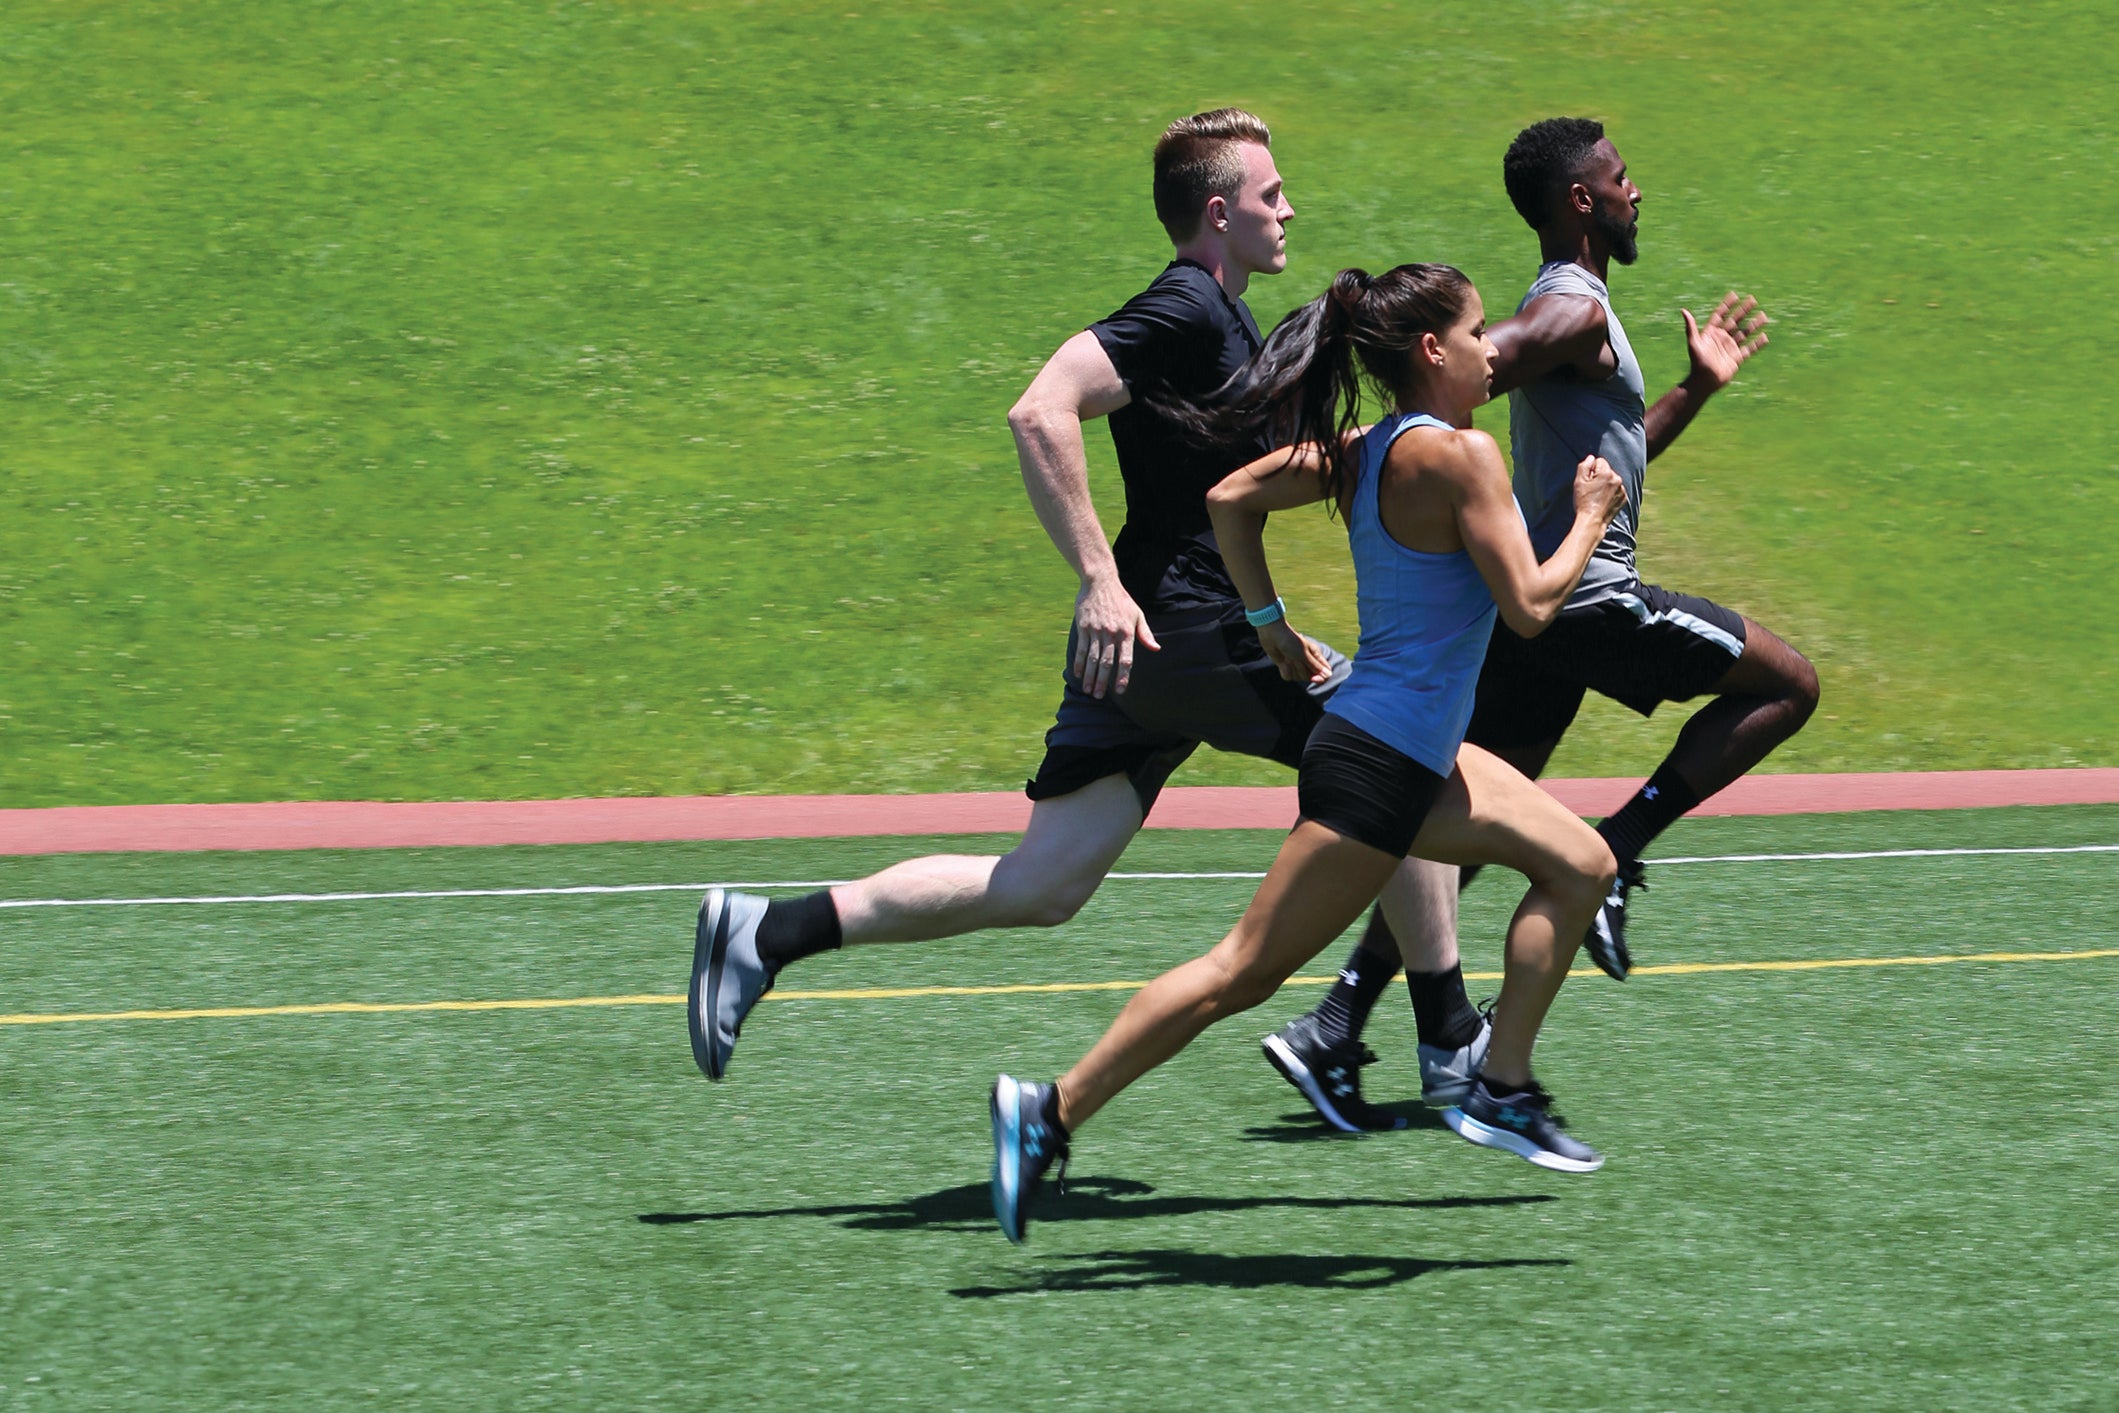 group sprinting on field